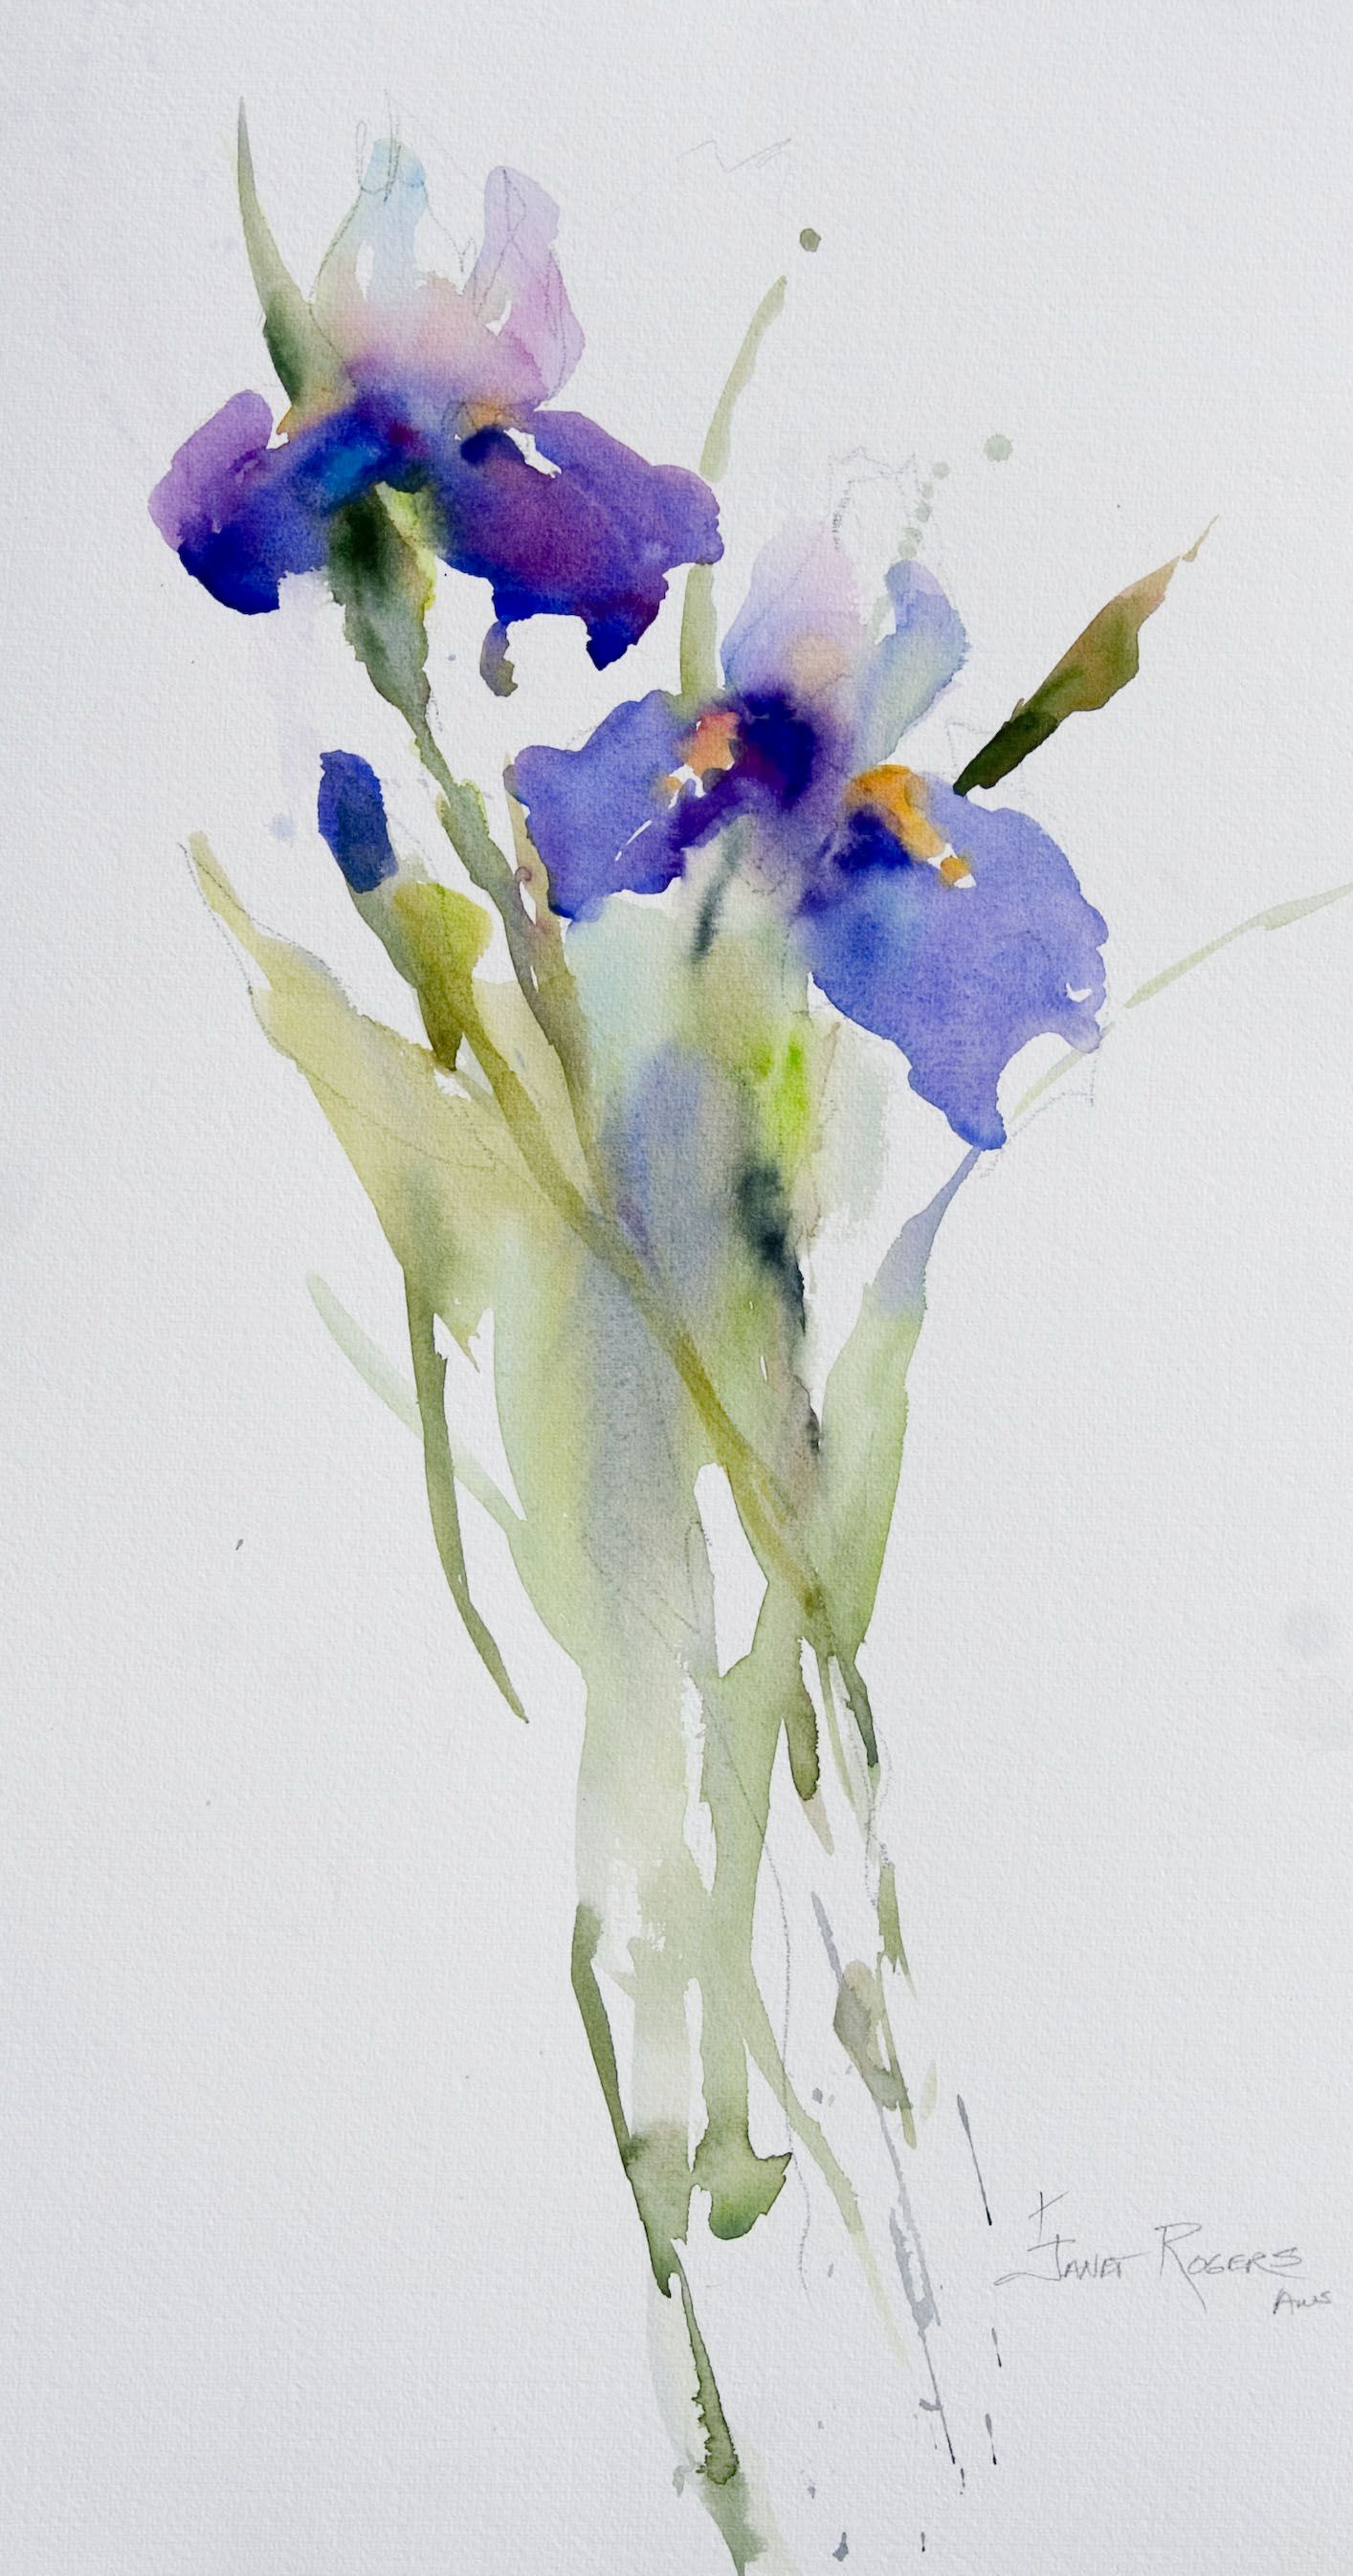 Janet Rogers Irises Watercolor Flowers Paintings Iris Painting